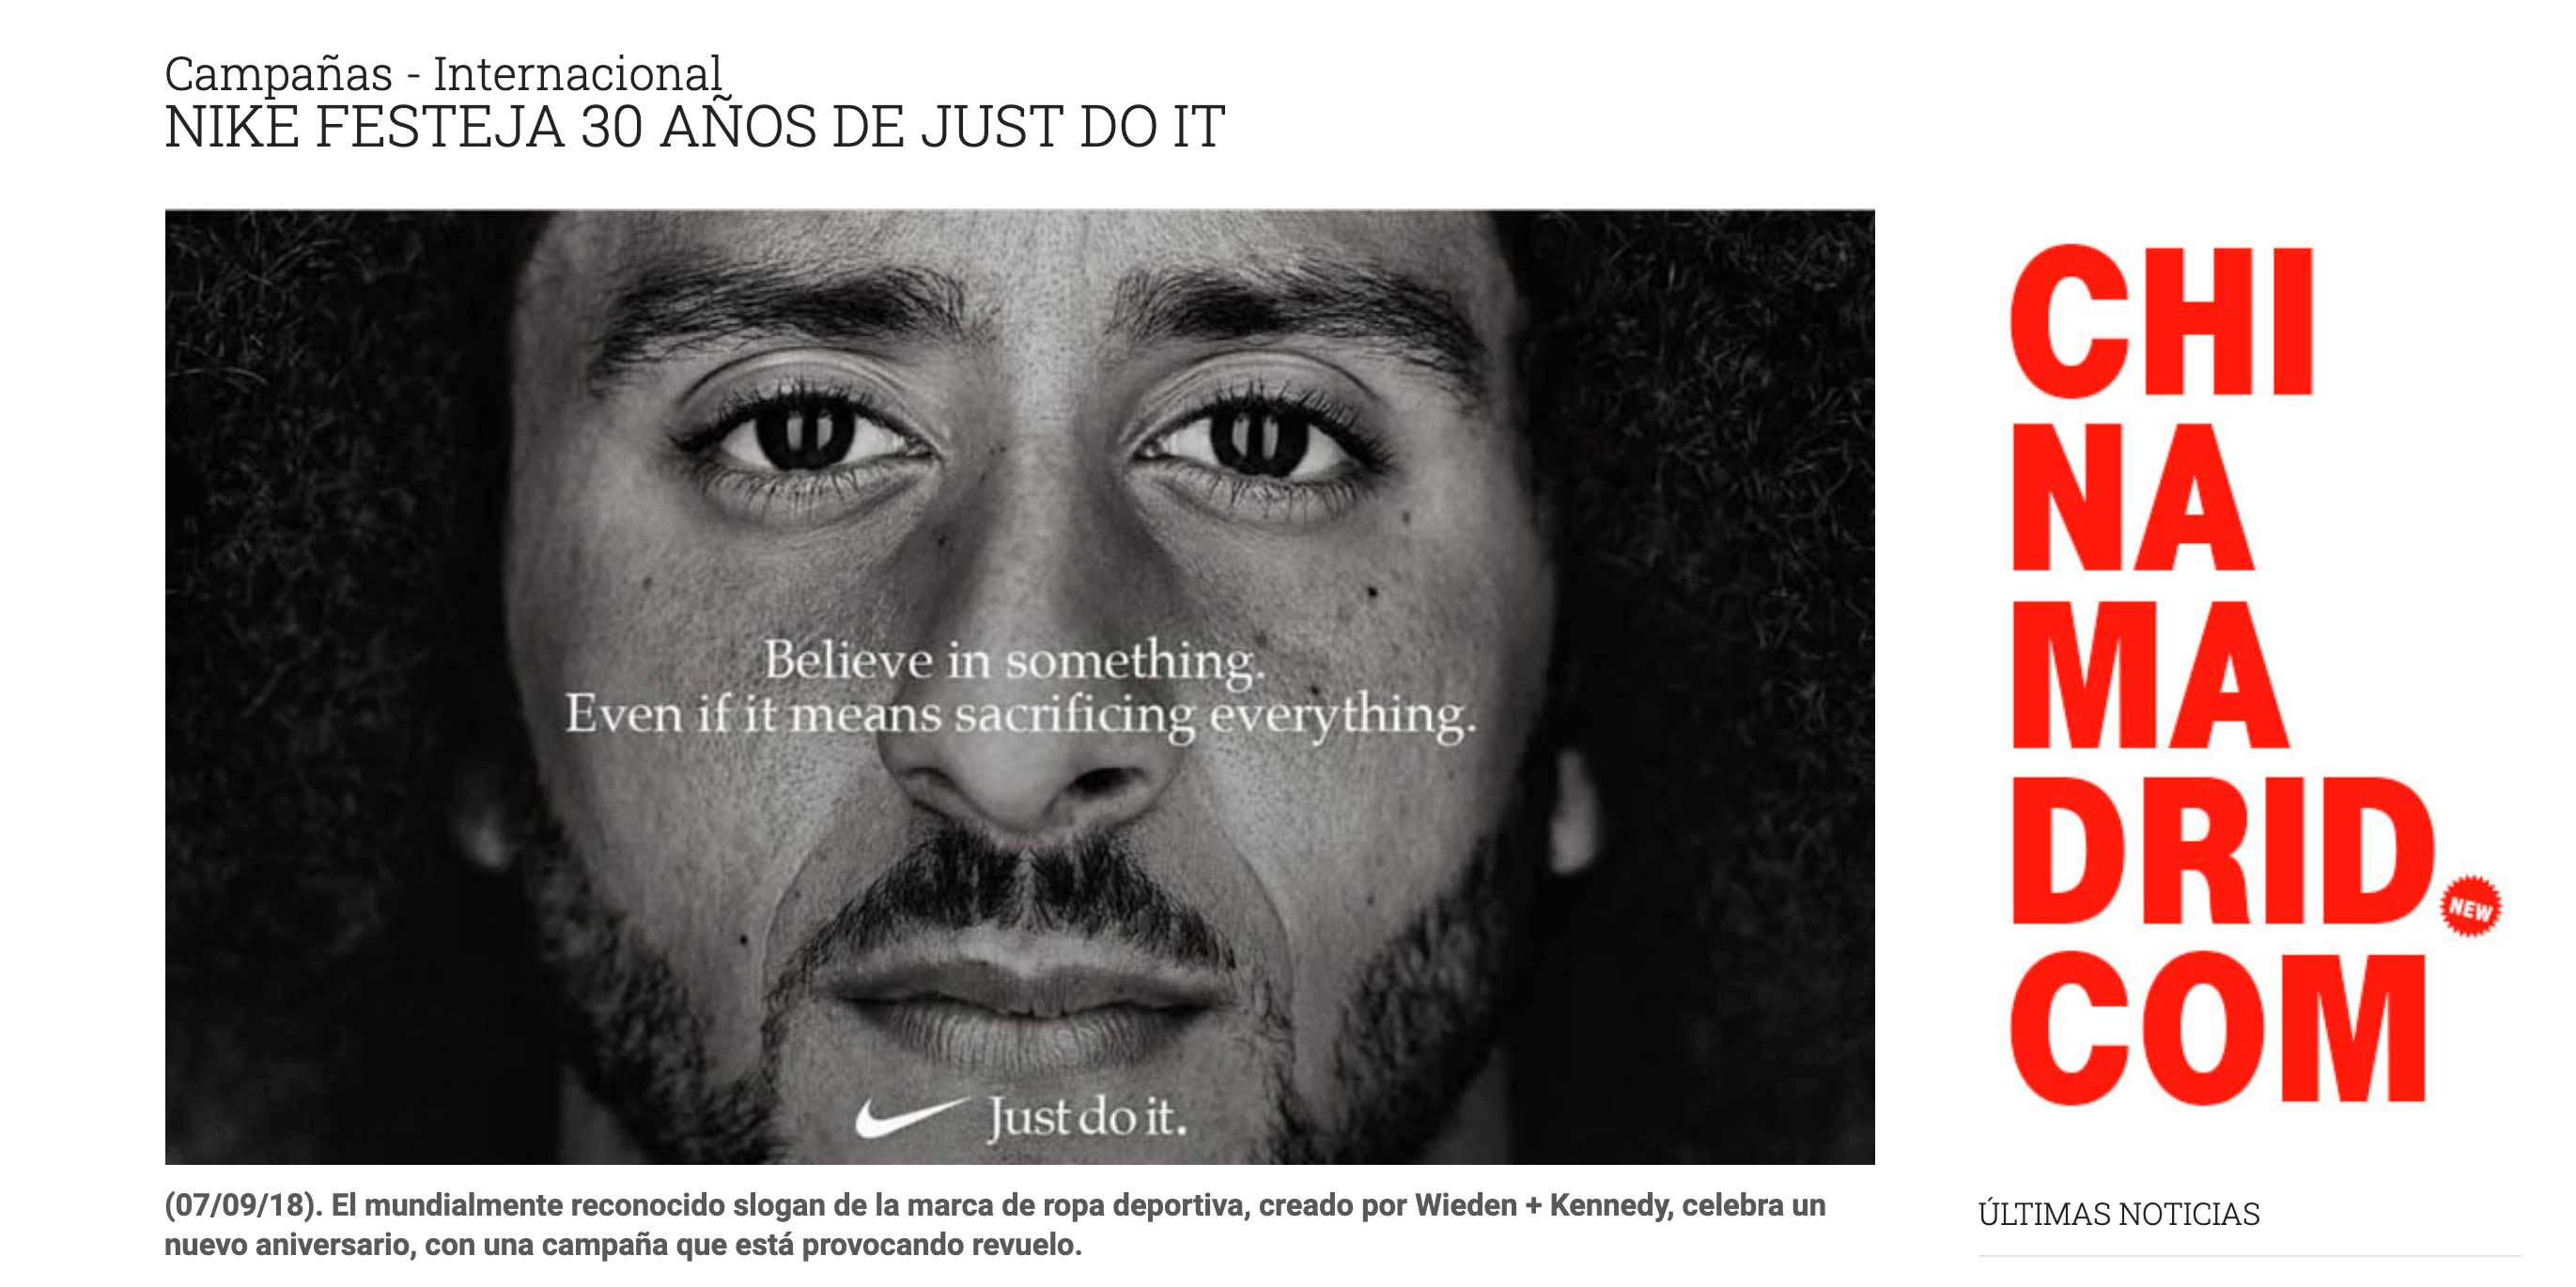 Posicionamiento de marca. Gráfica Just do it.